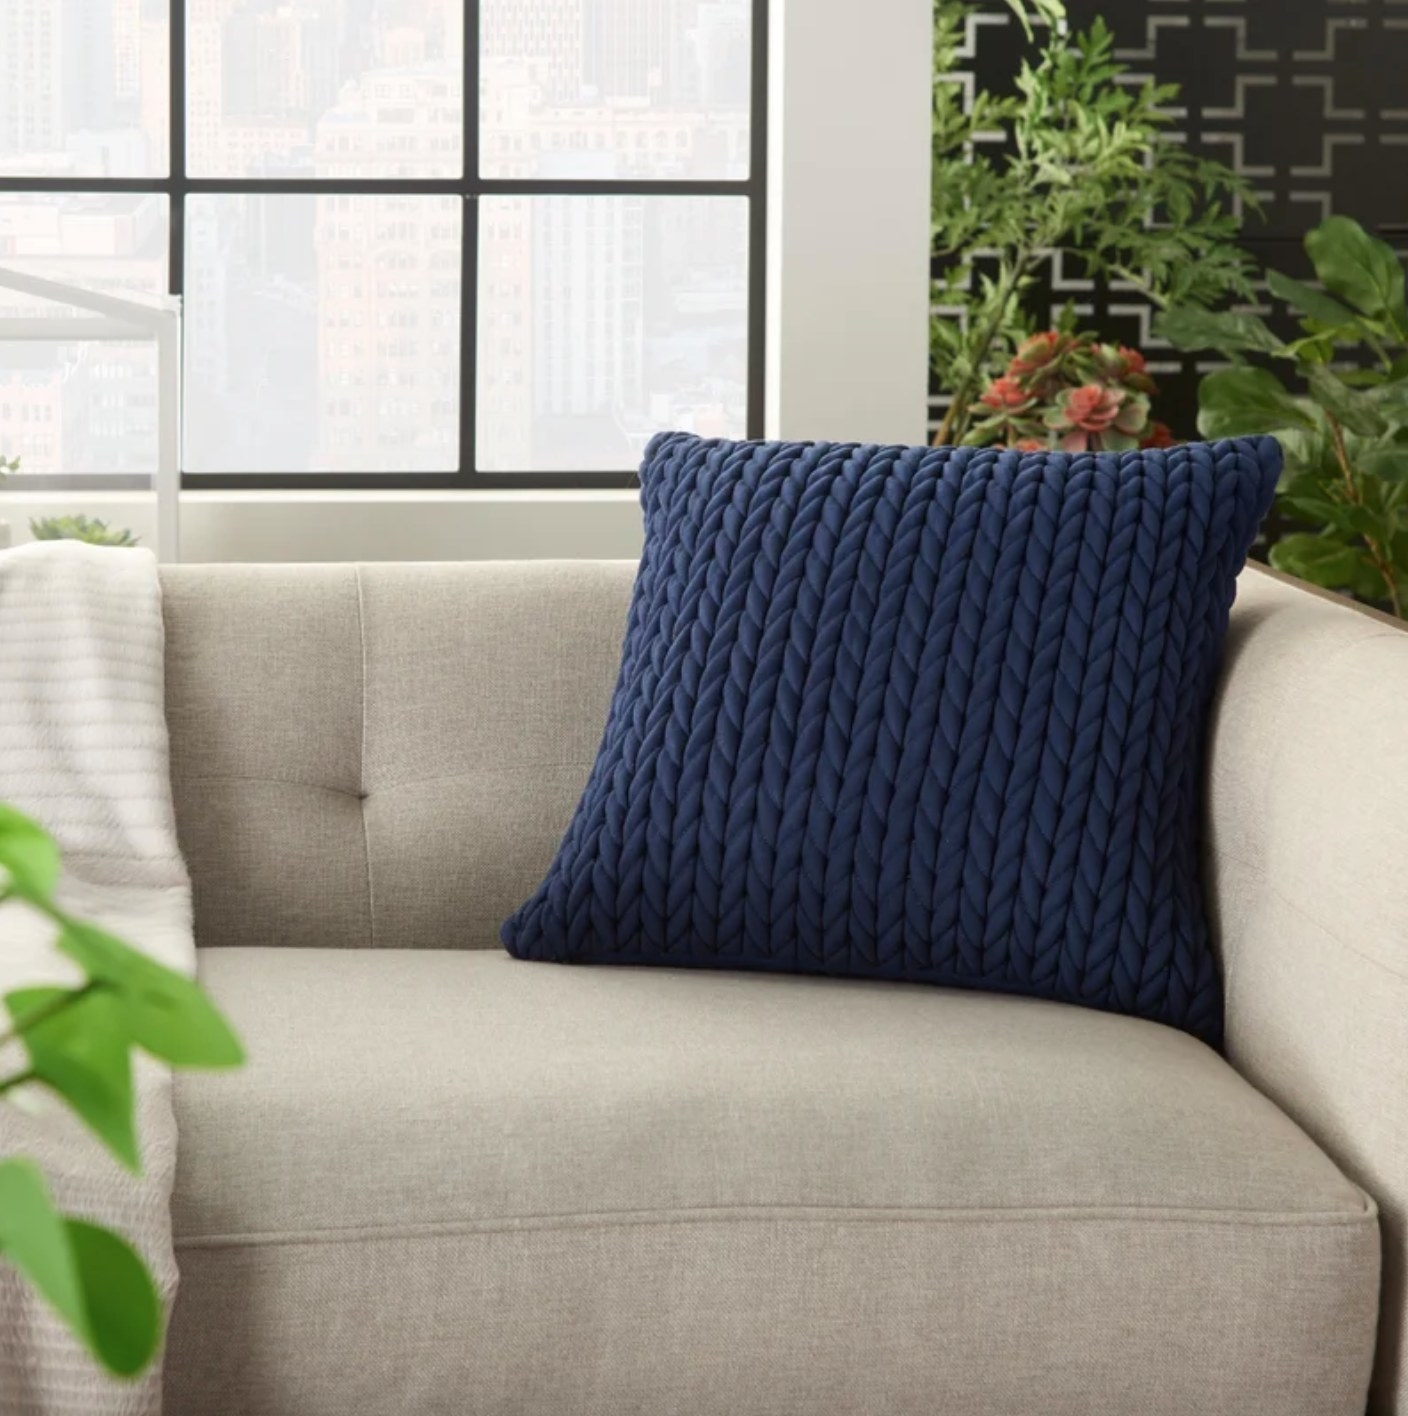 The quilted square pillow cover and insert in navy blue